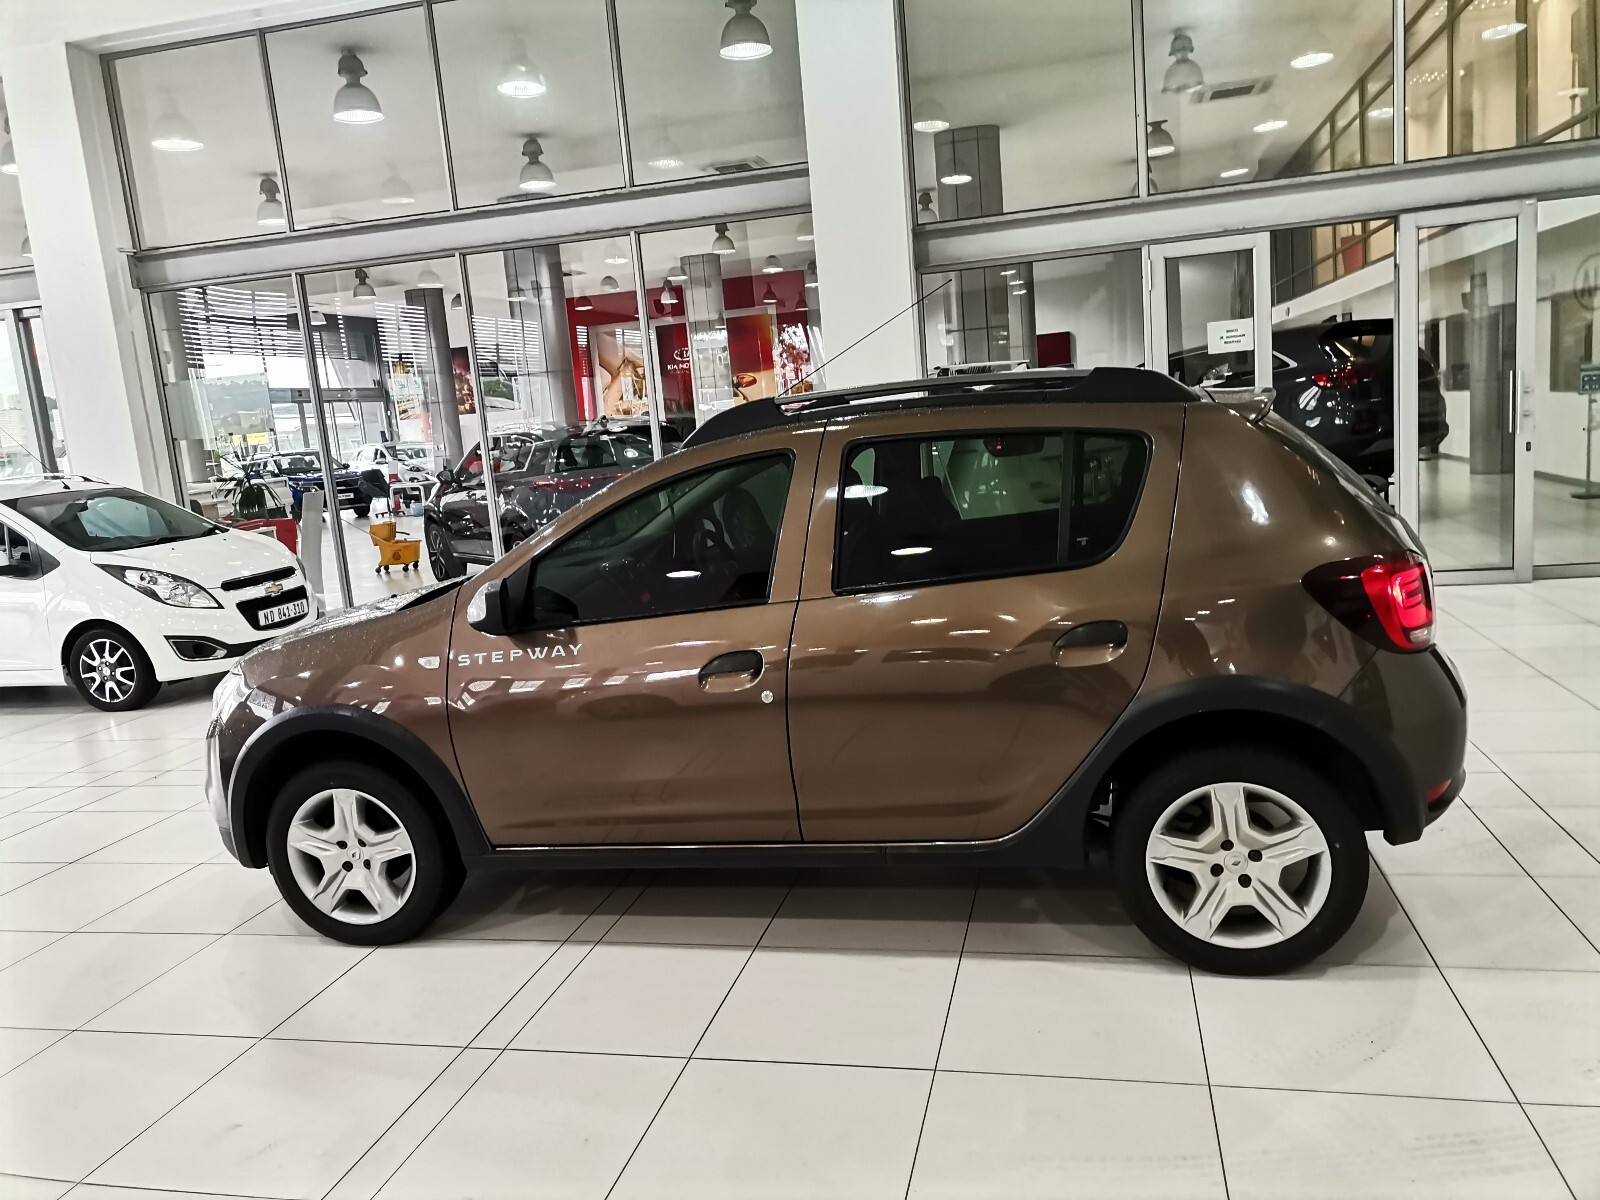 RENAULT 900T STEPWAY EXPRESSION Pinetown 3307425